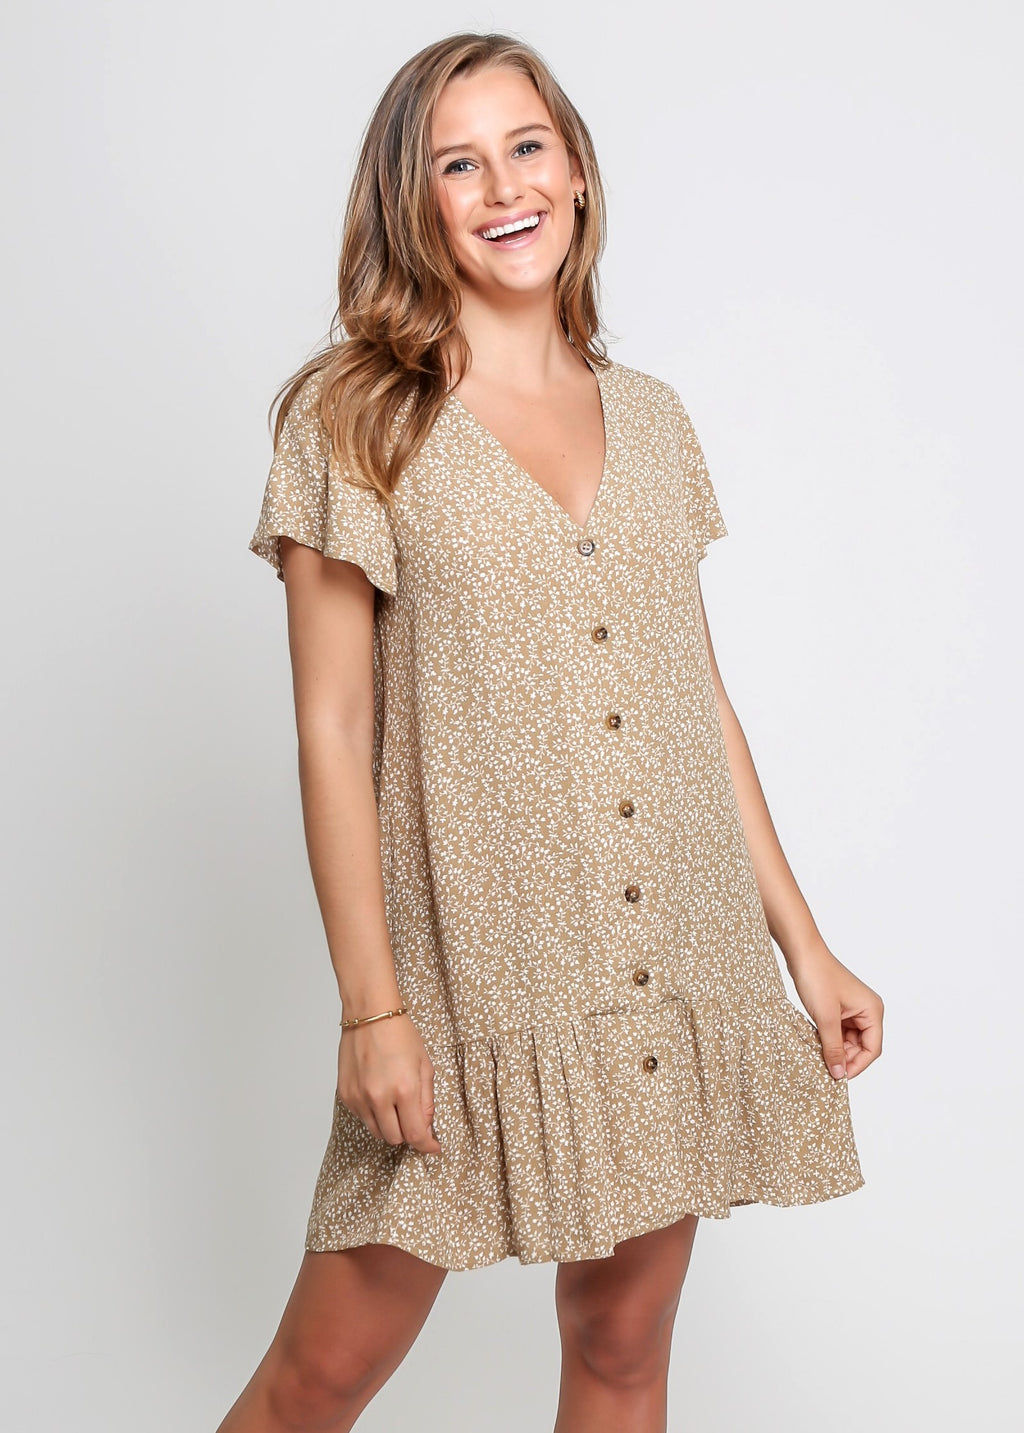 PIPPER DRESS - BEIGE DISSY